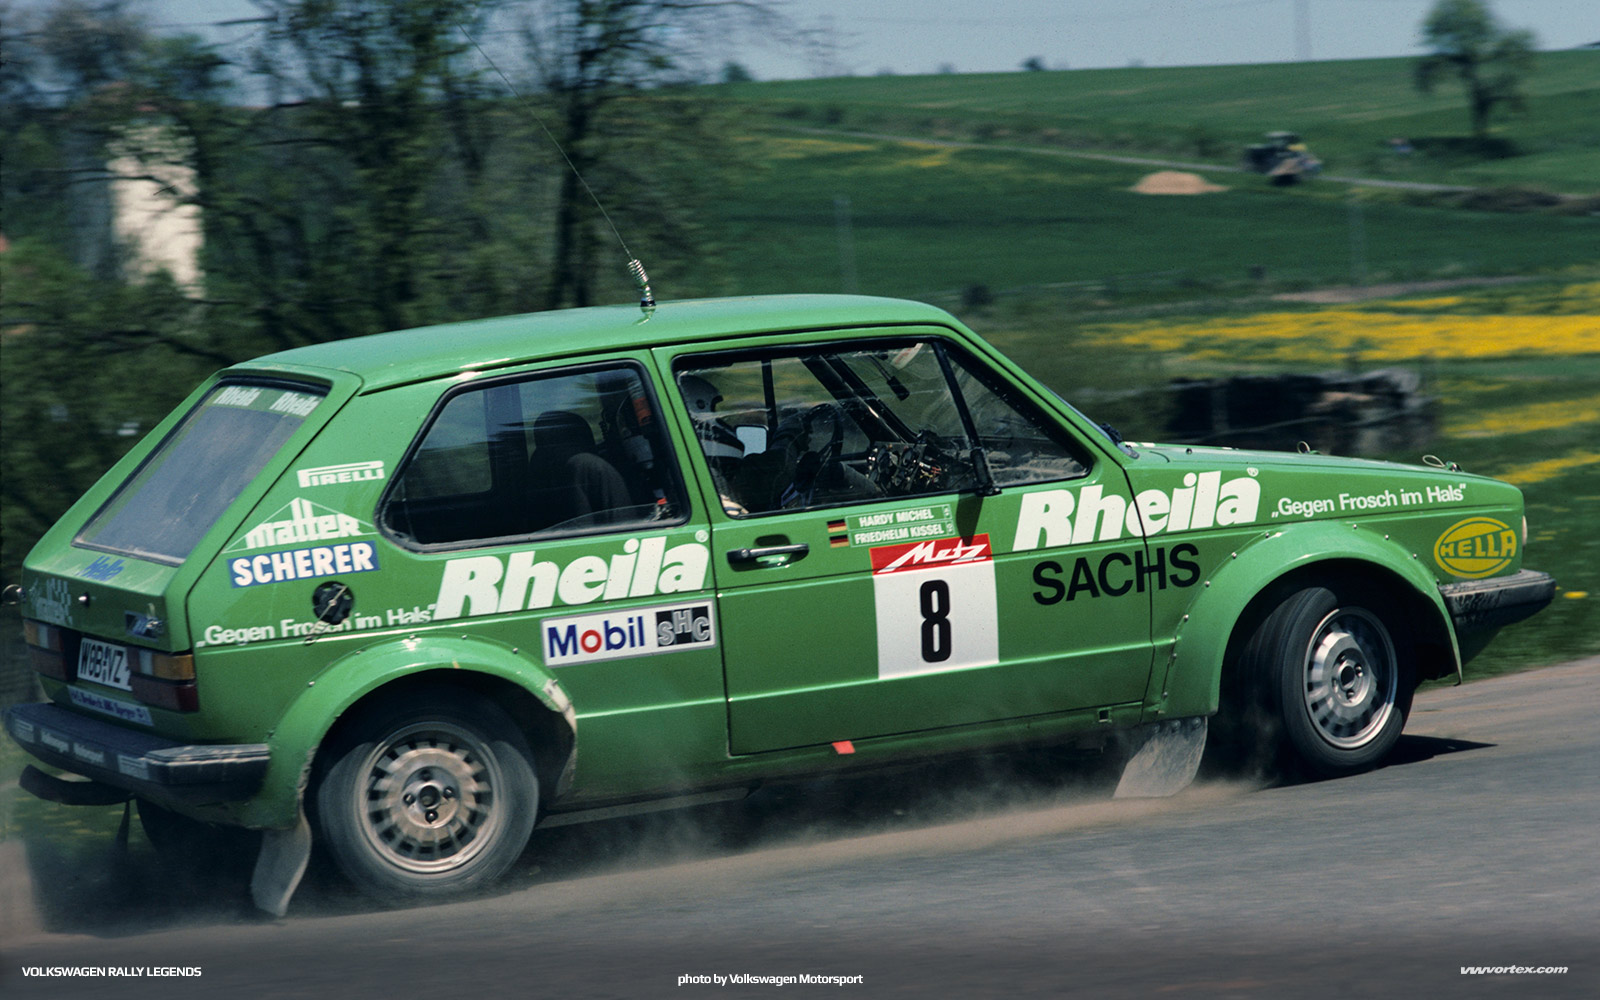 volkswagen-rally-legends-389